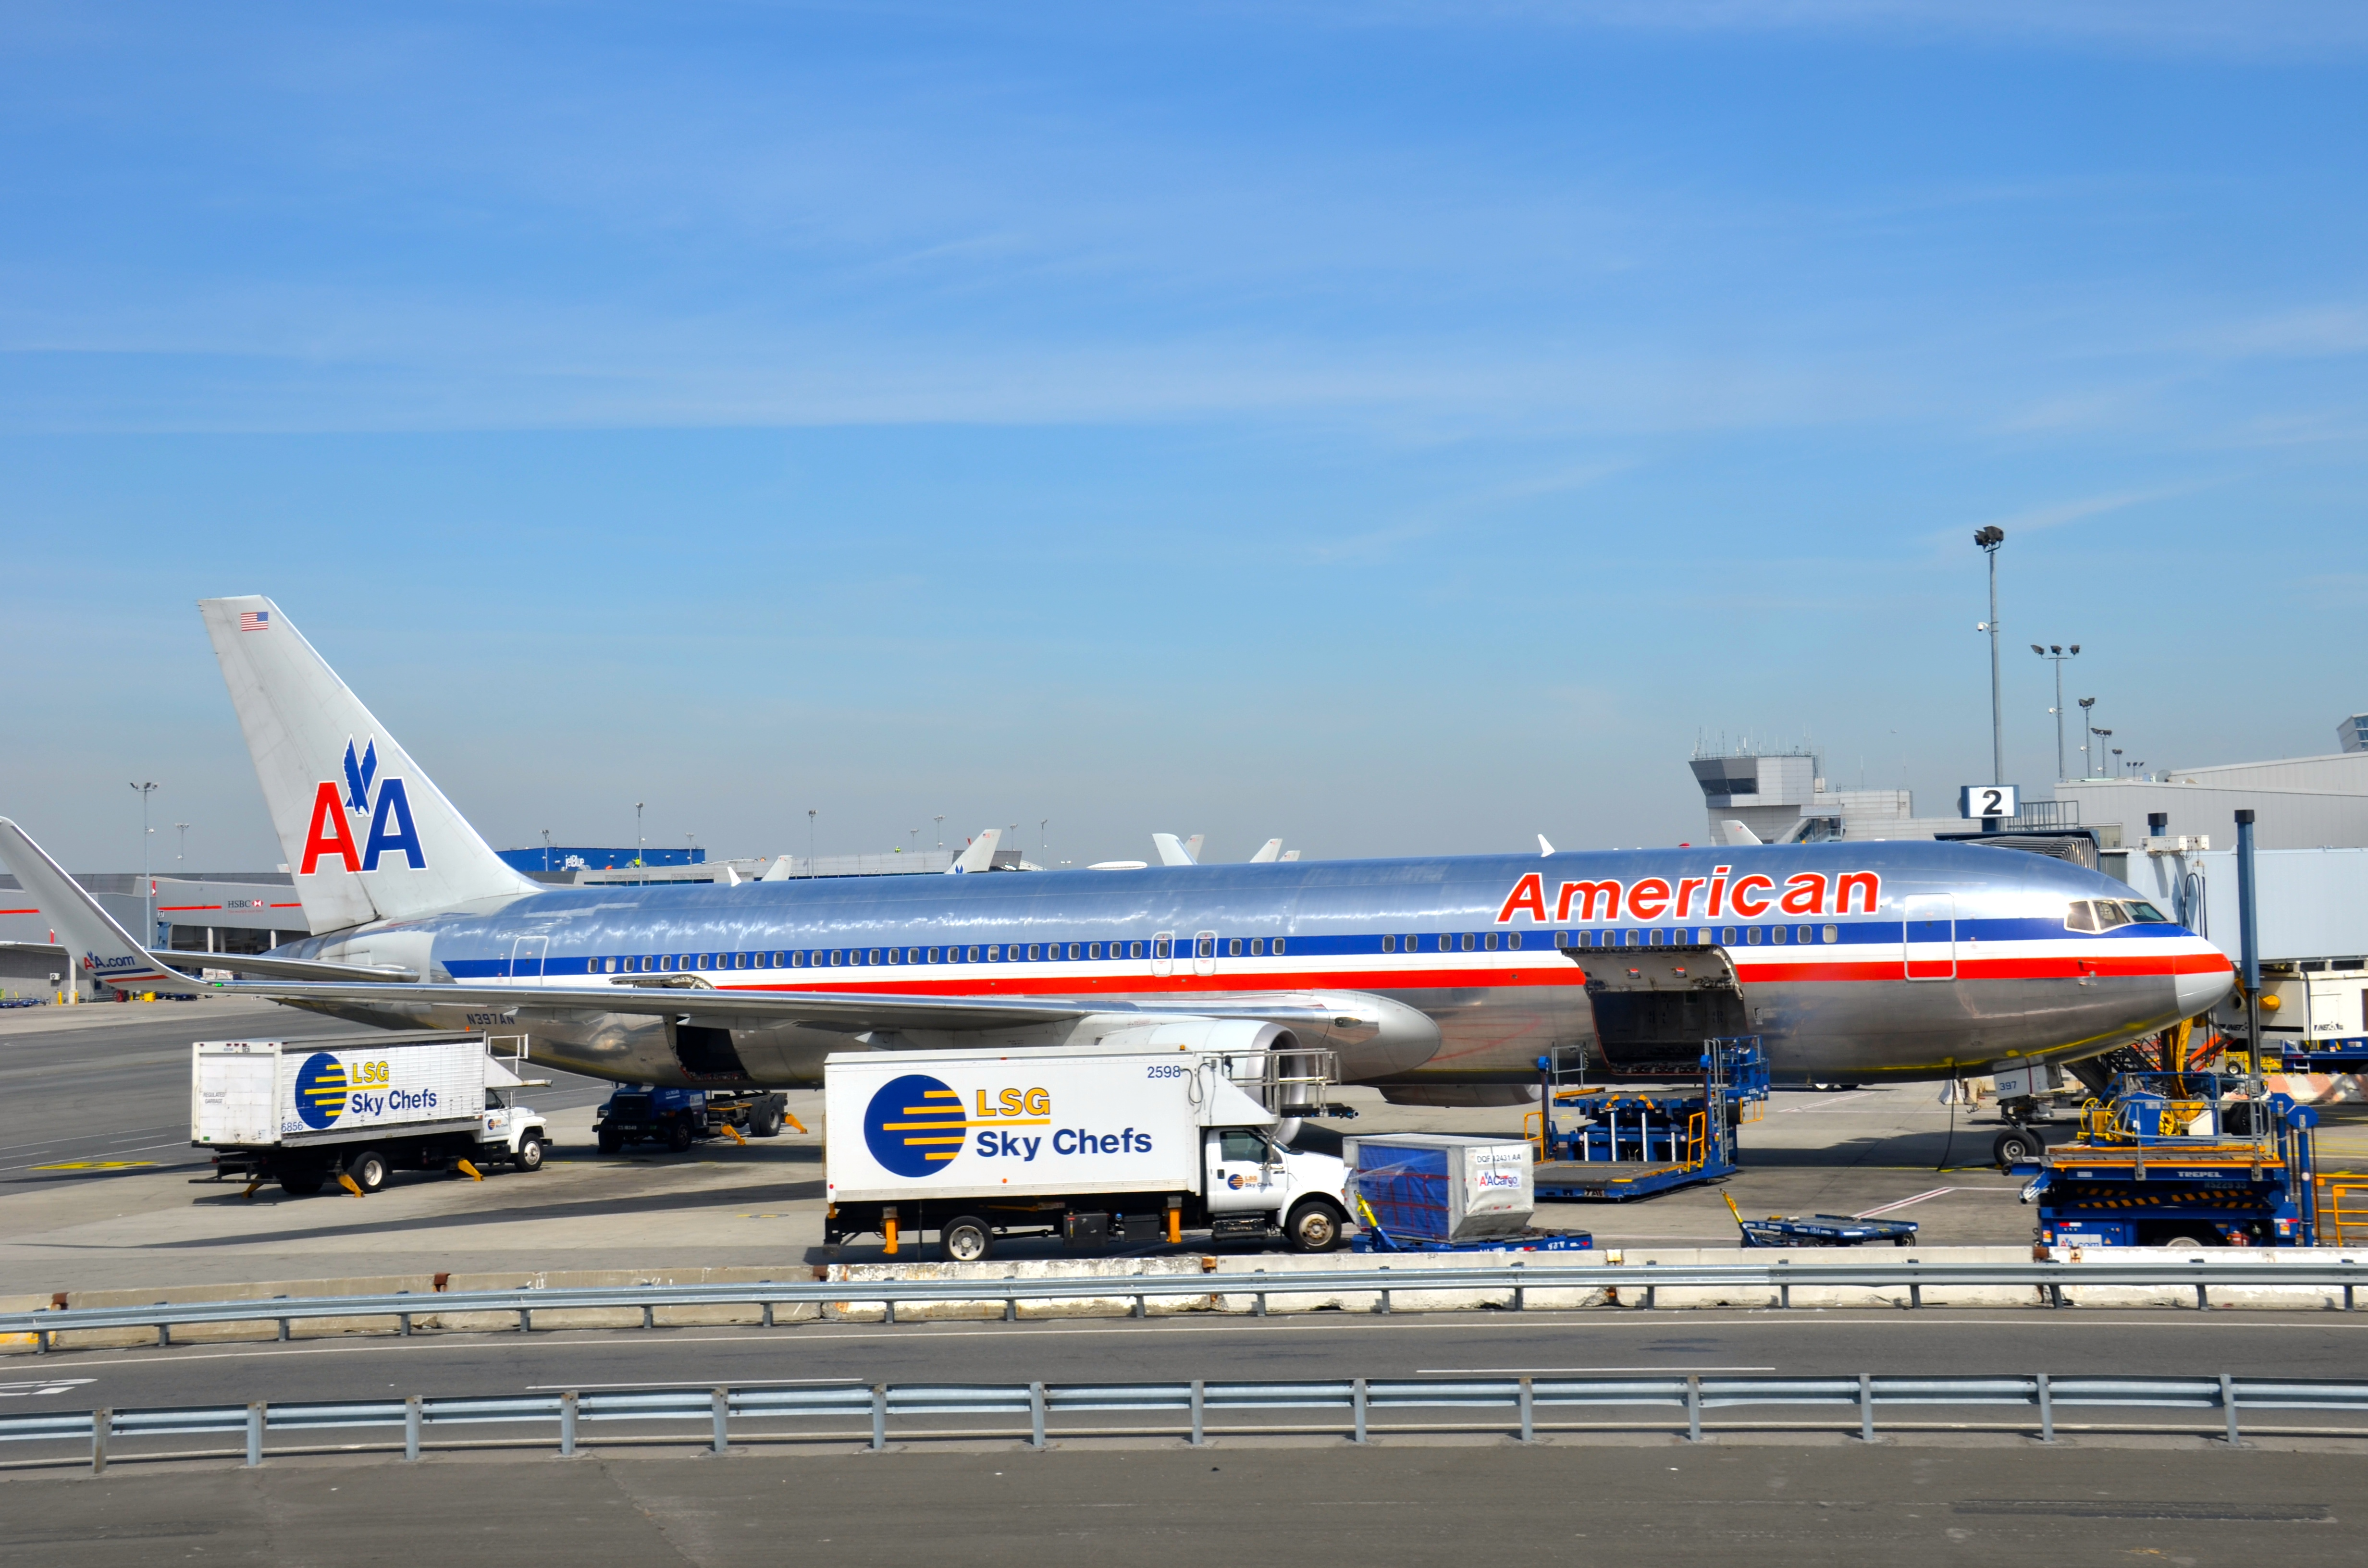 An American Airlines 767-300 at JFK